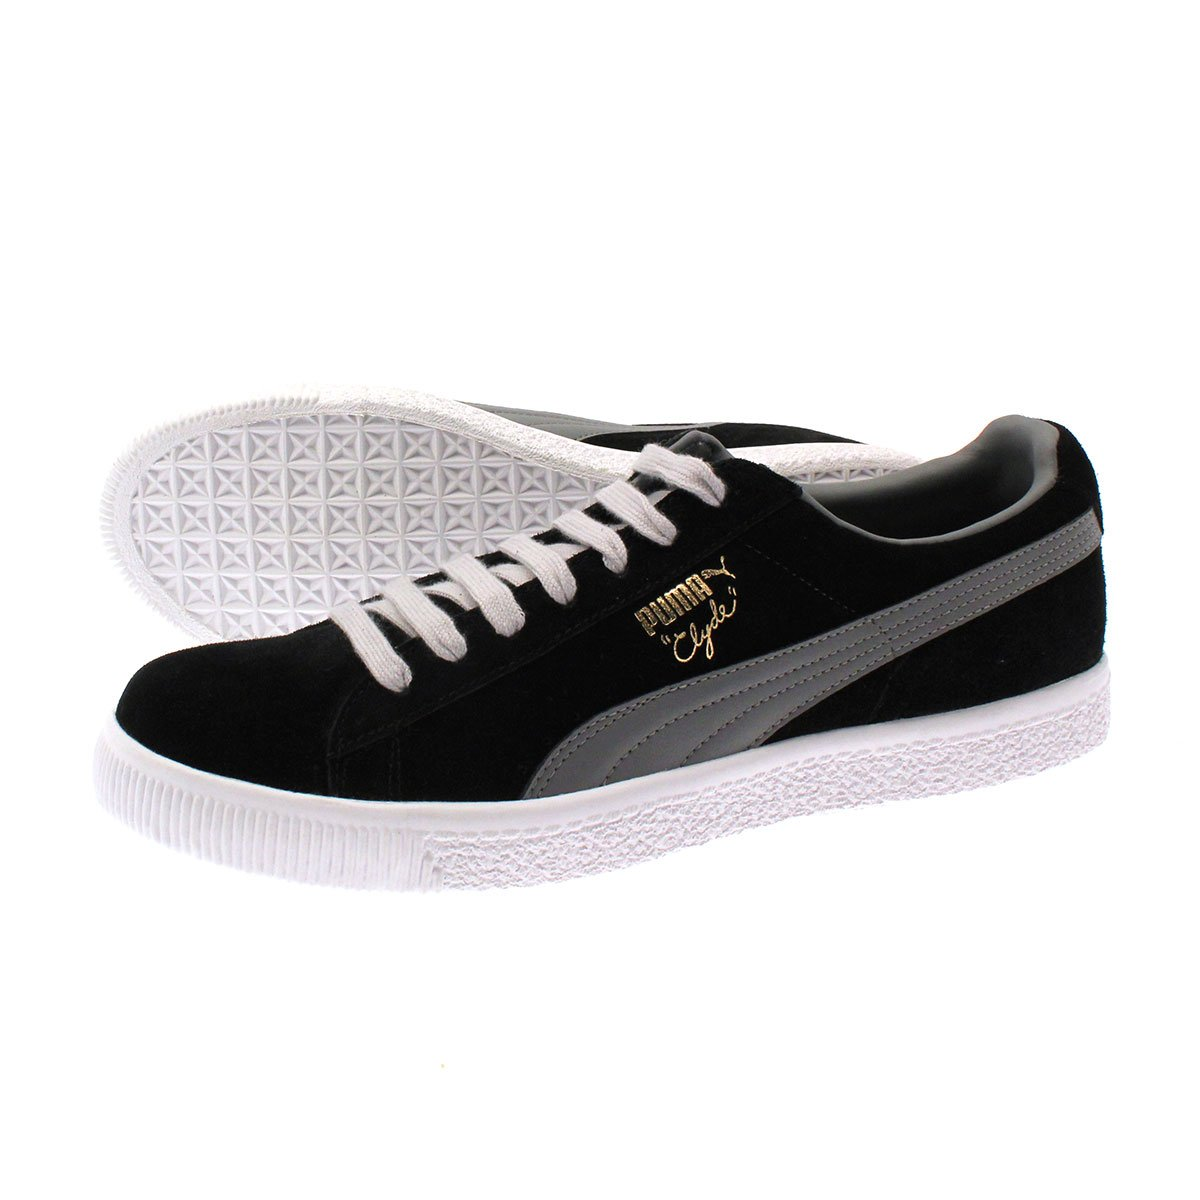 puma clyde script trainers puma from the menswear site uk